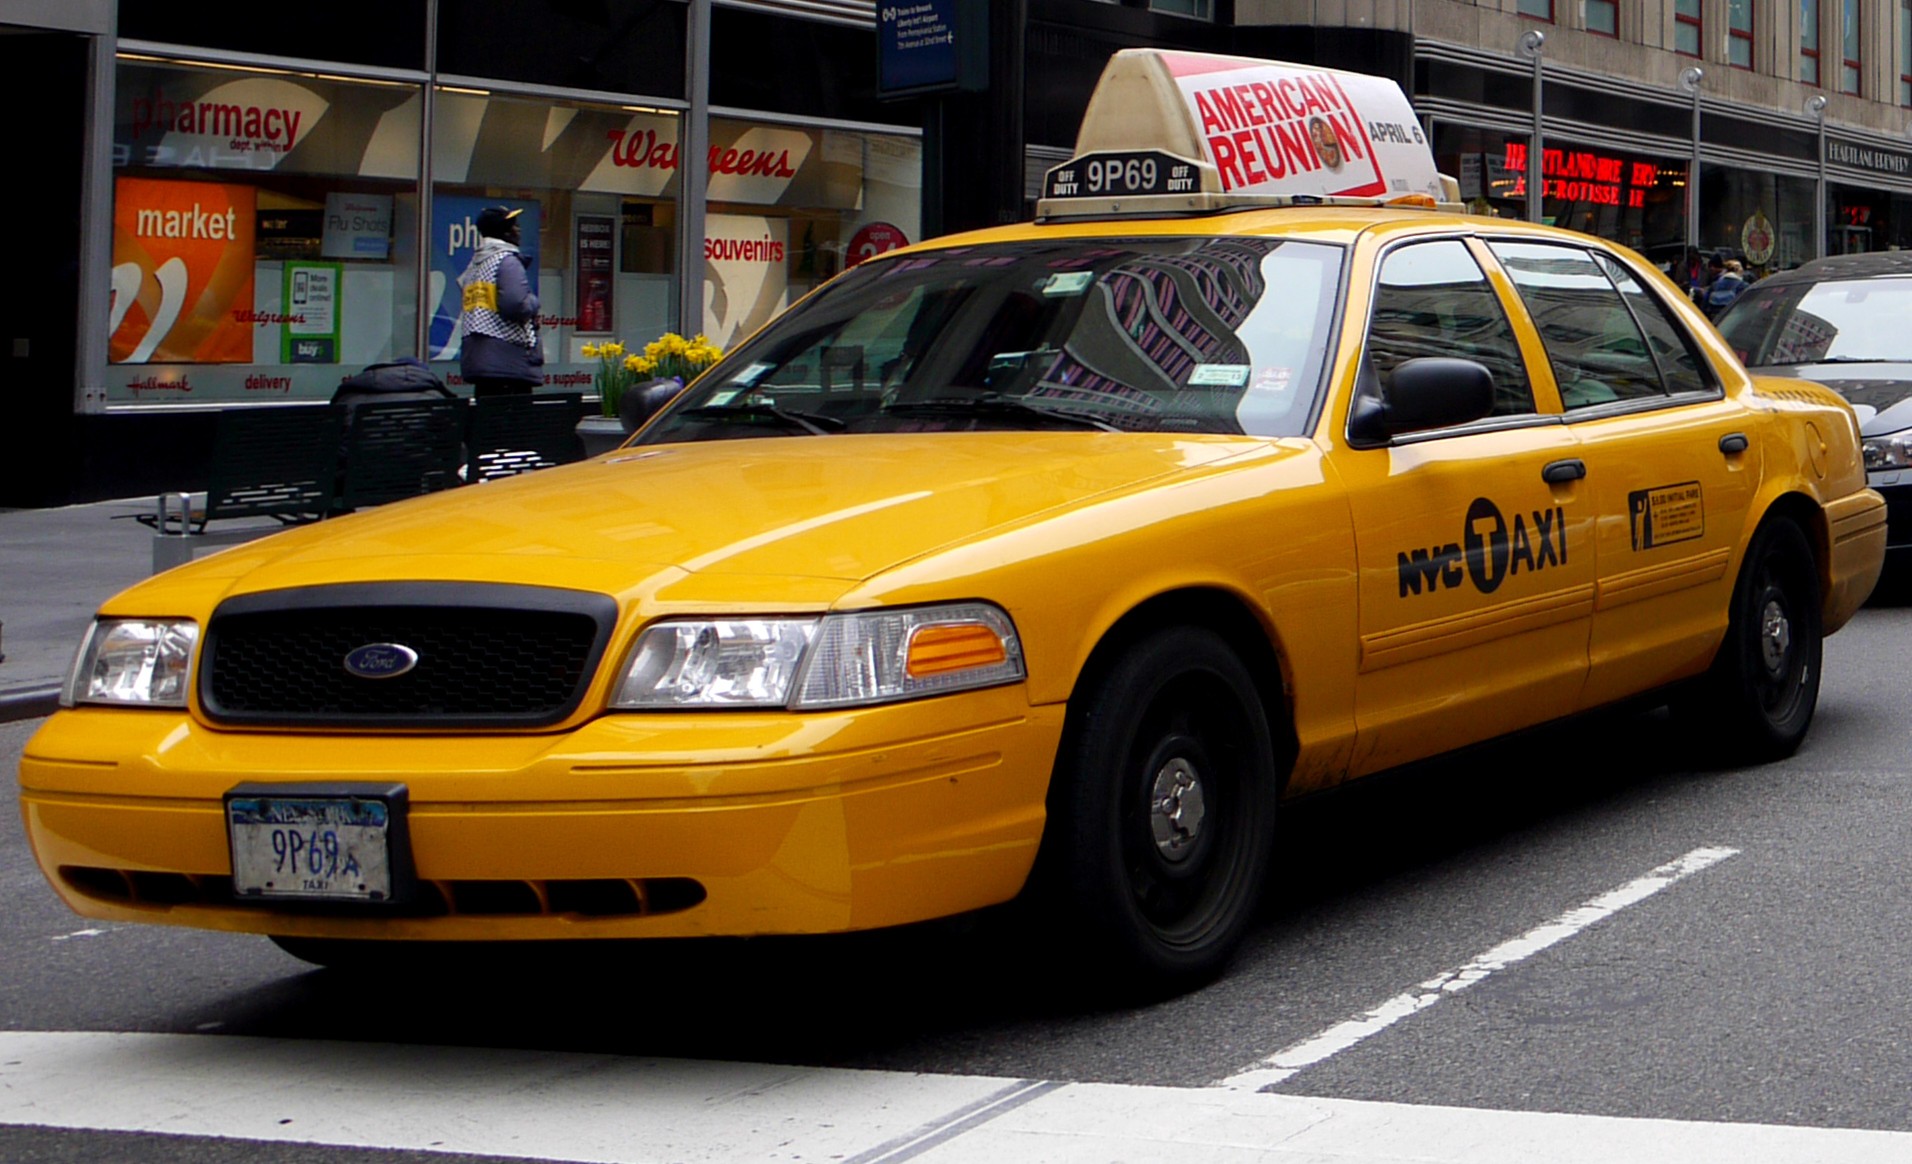 File:NYC Taxi Ford Crown Victoria.jpg - Wikimedia Commons